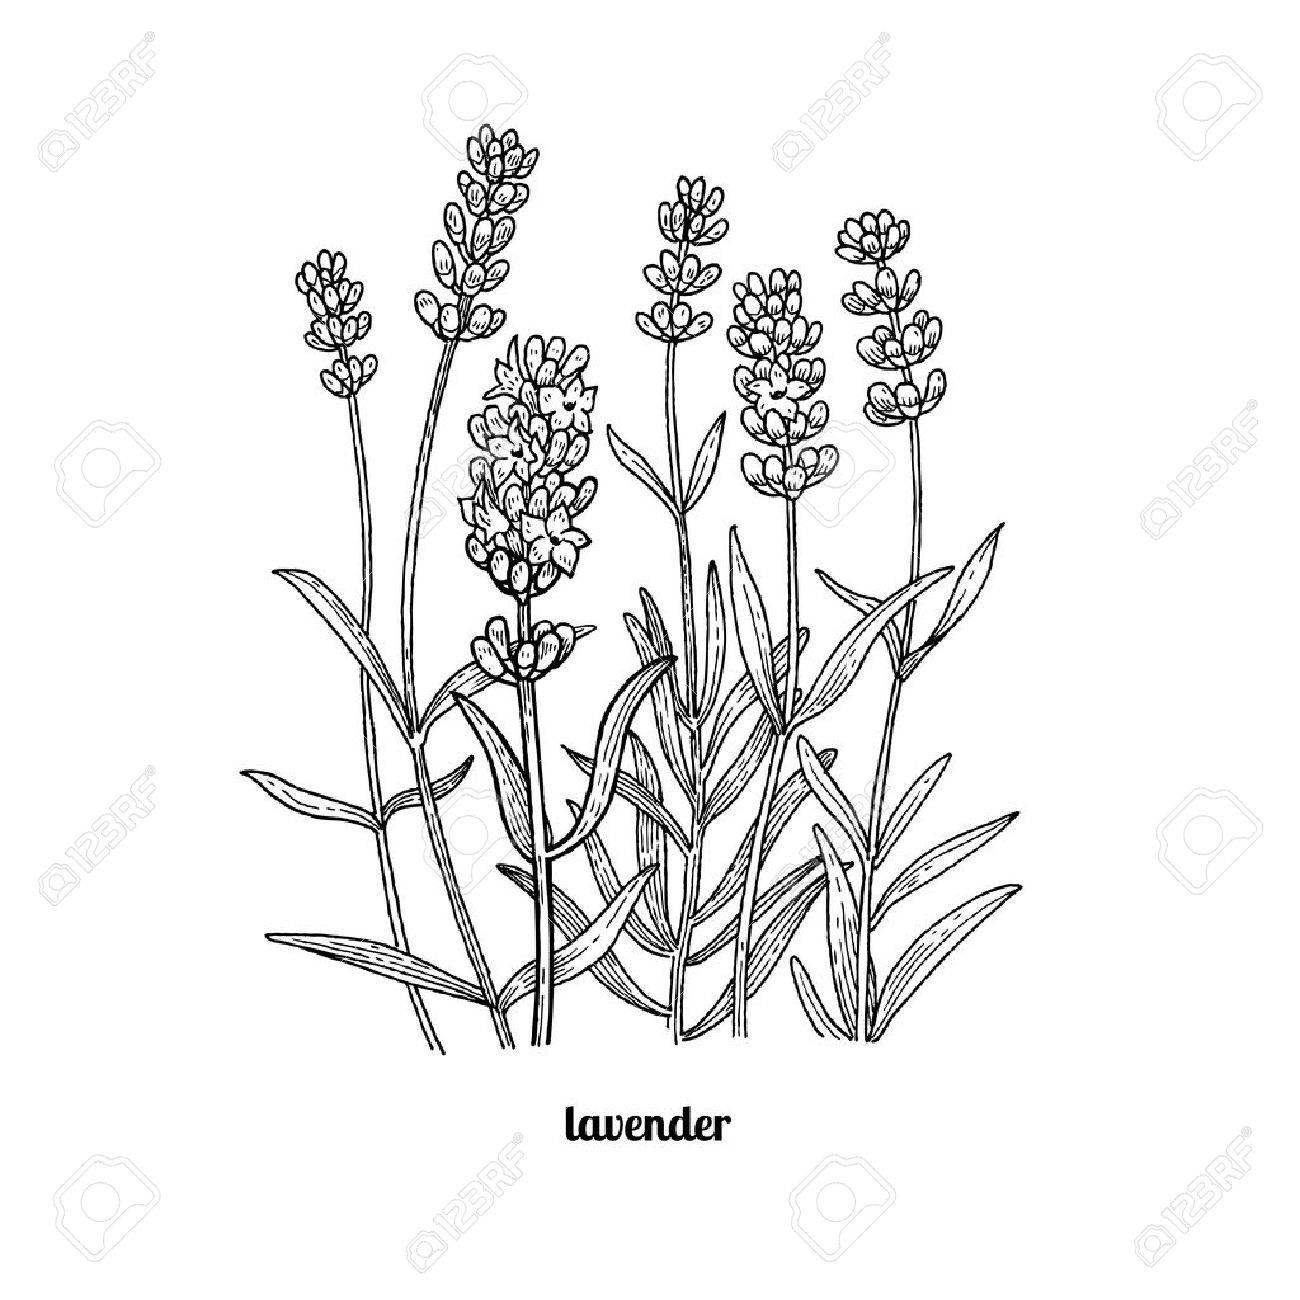 Line Drawing Lavender : Lavender line drawing at getdrawings free for